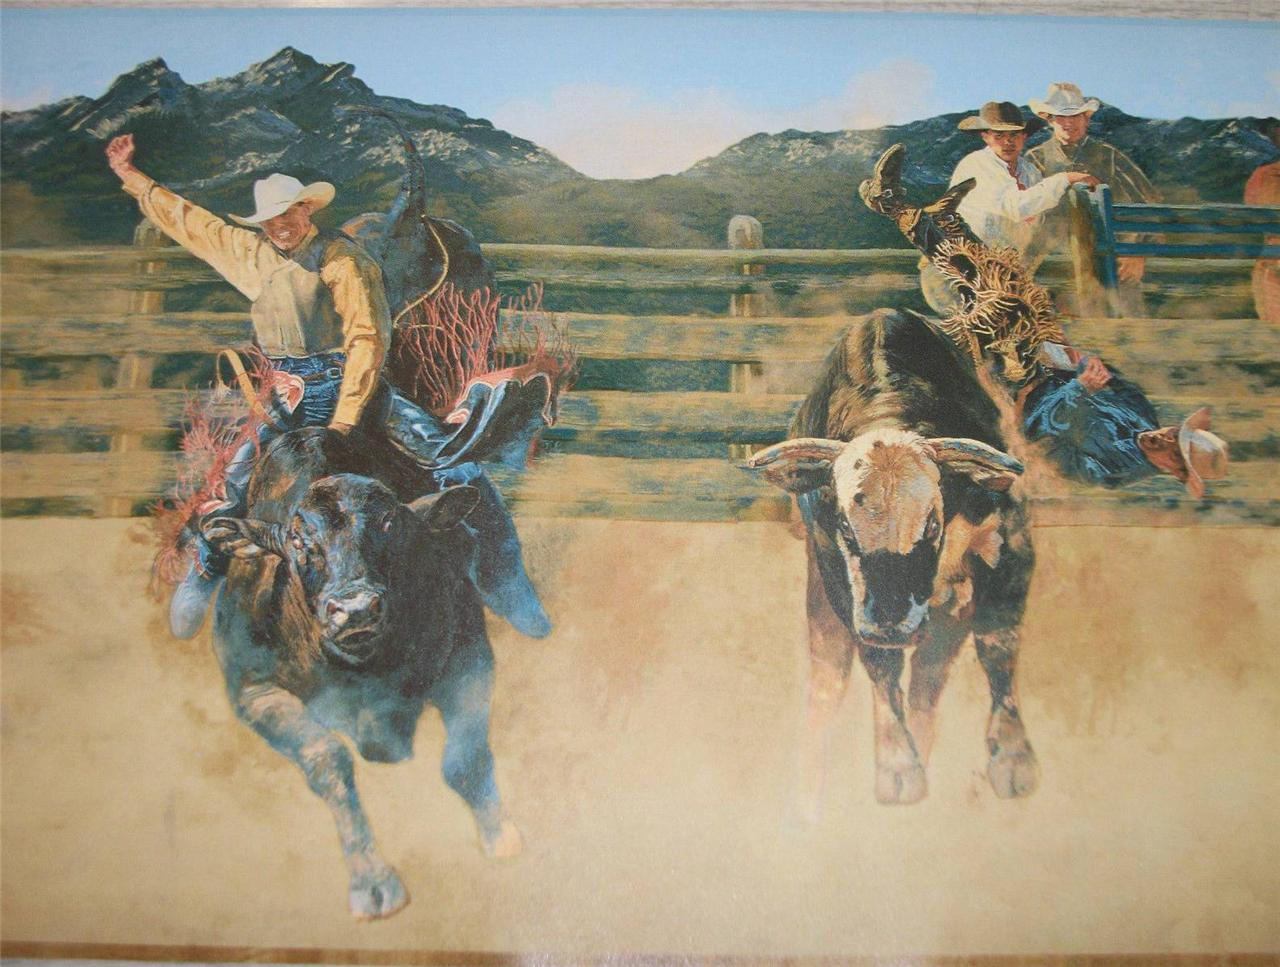 Wallpaper Border Western Cowboys Bull Riding Bucking Broncos 10 1 8 1280x967